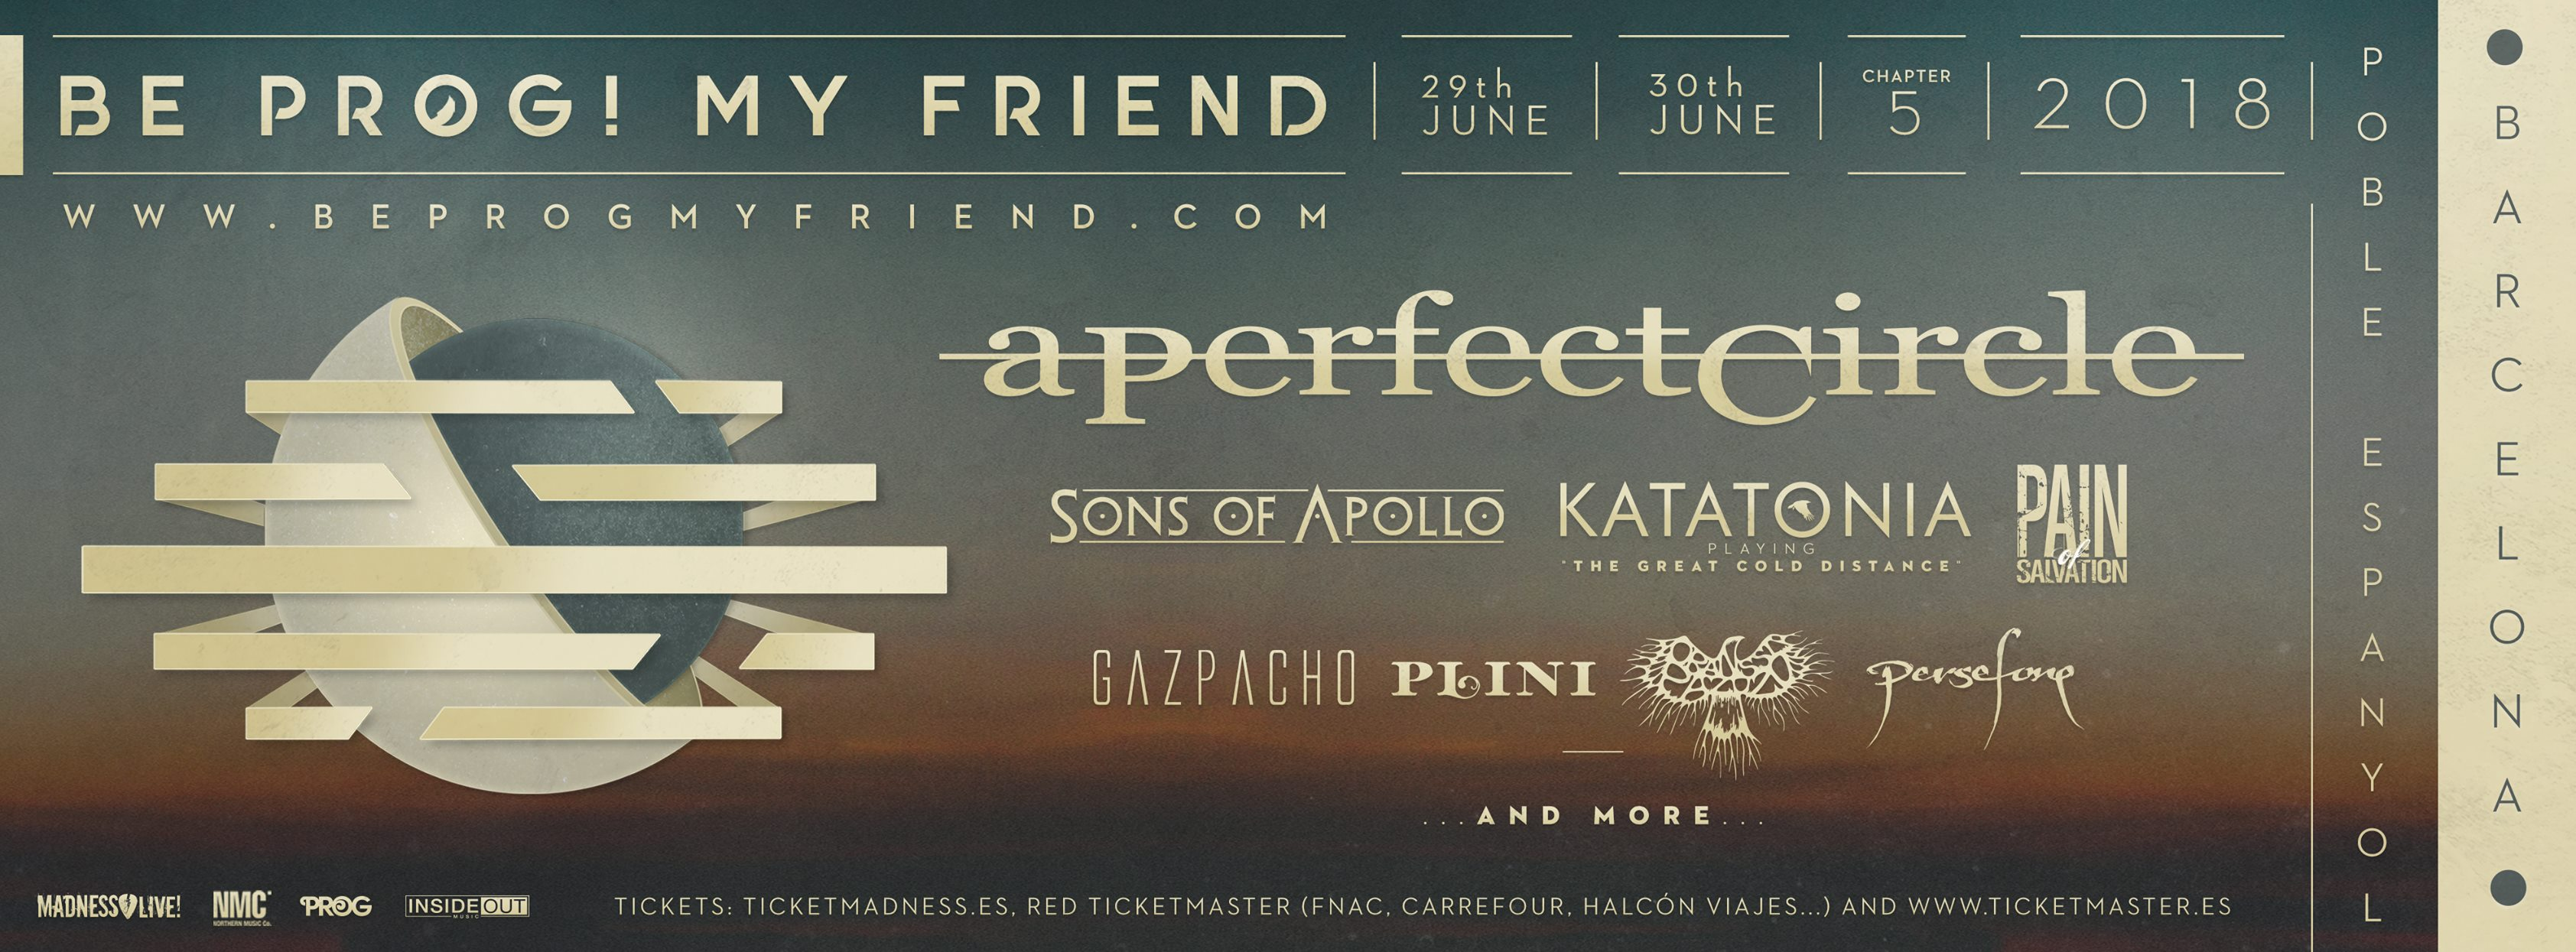 Be Prog My Friend 2018